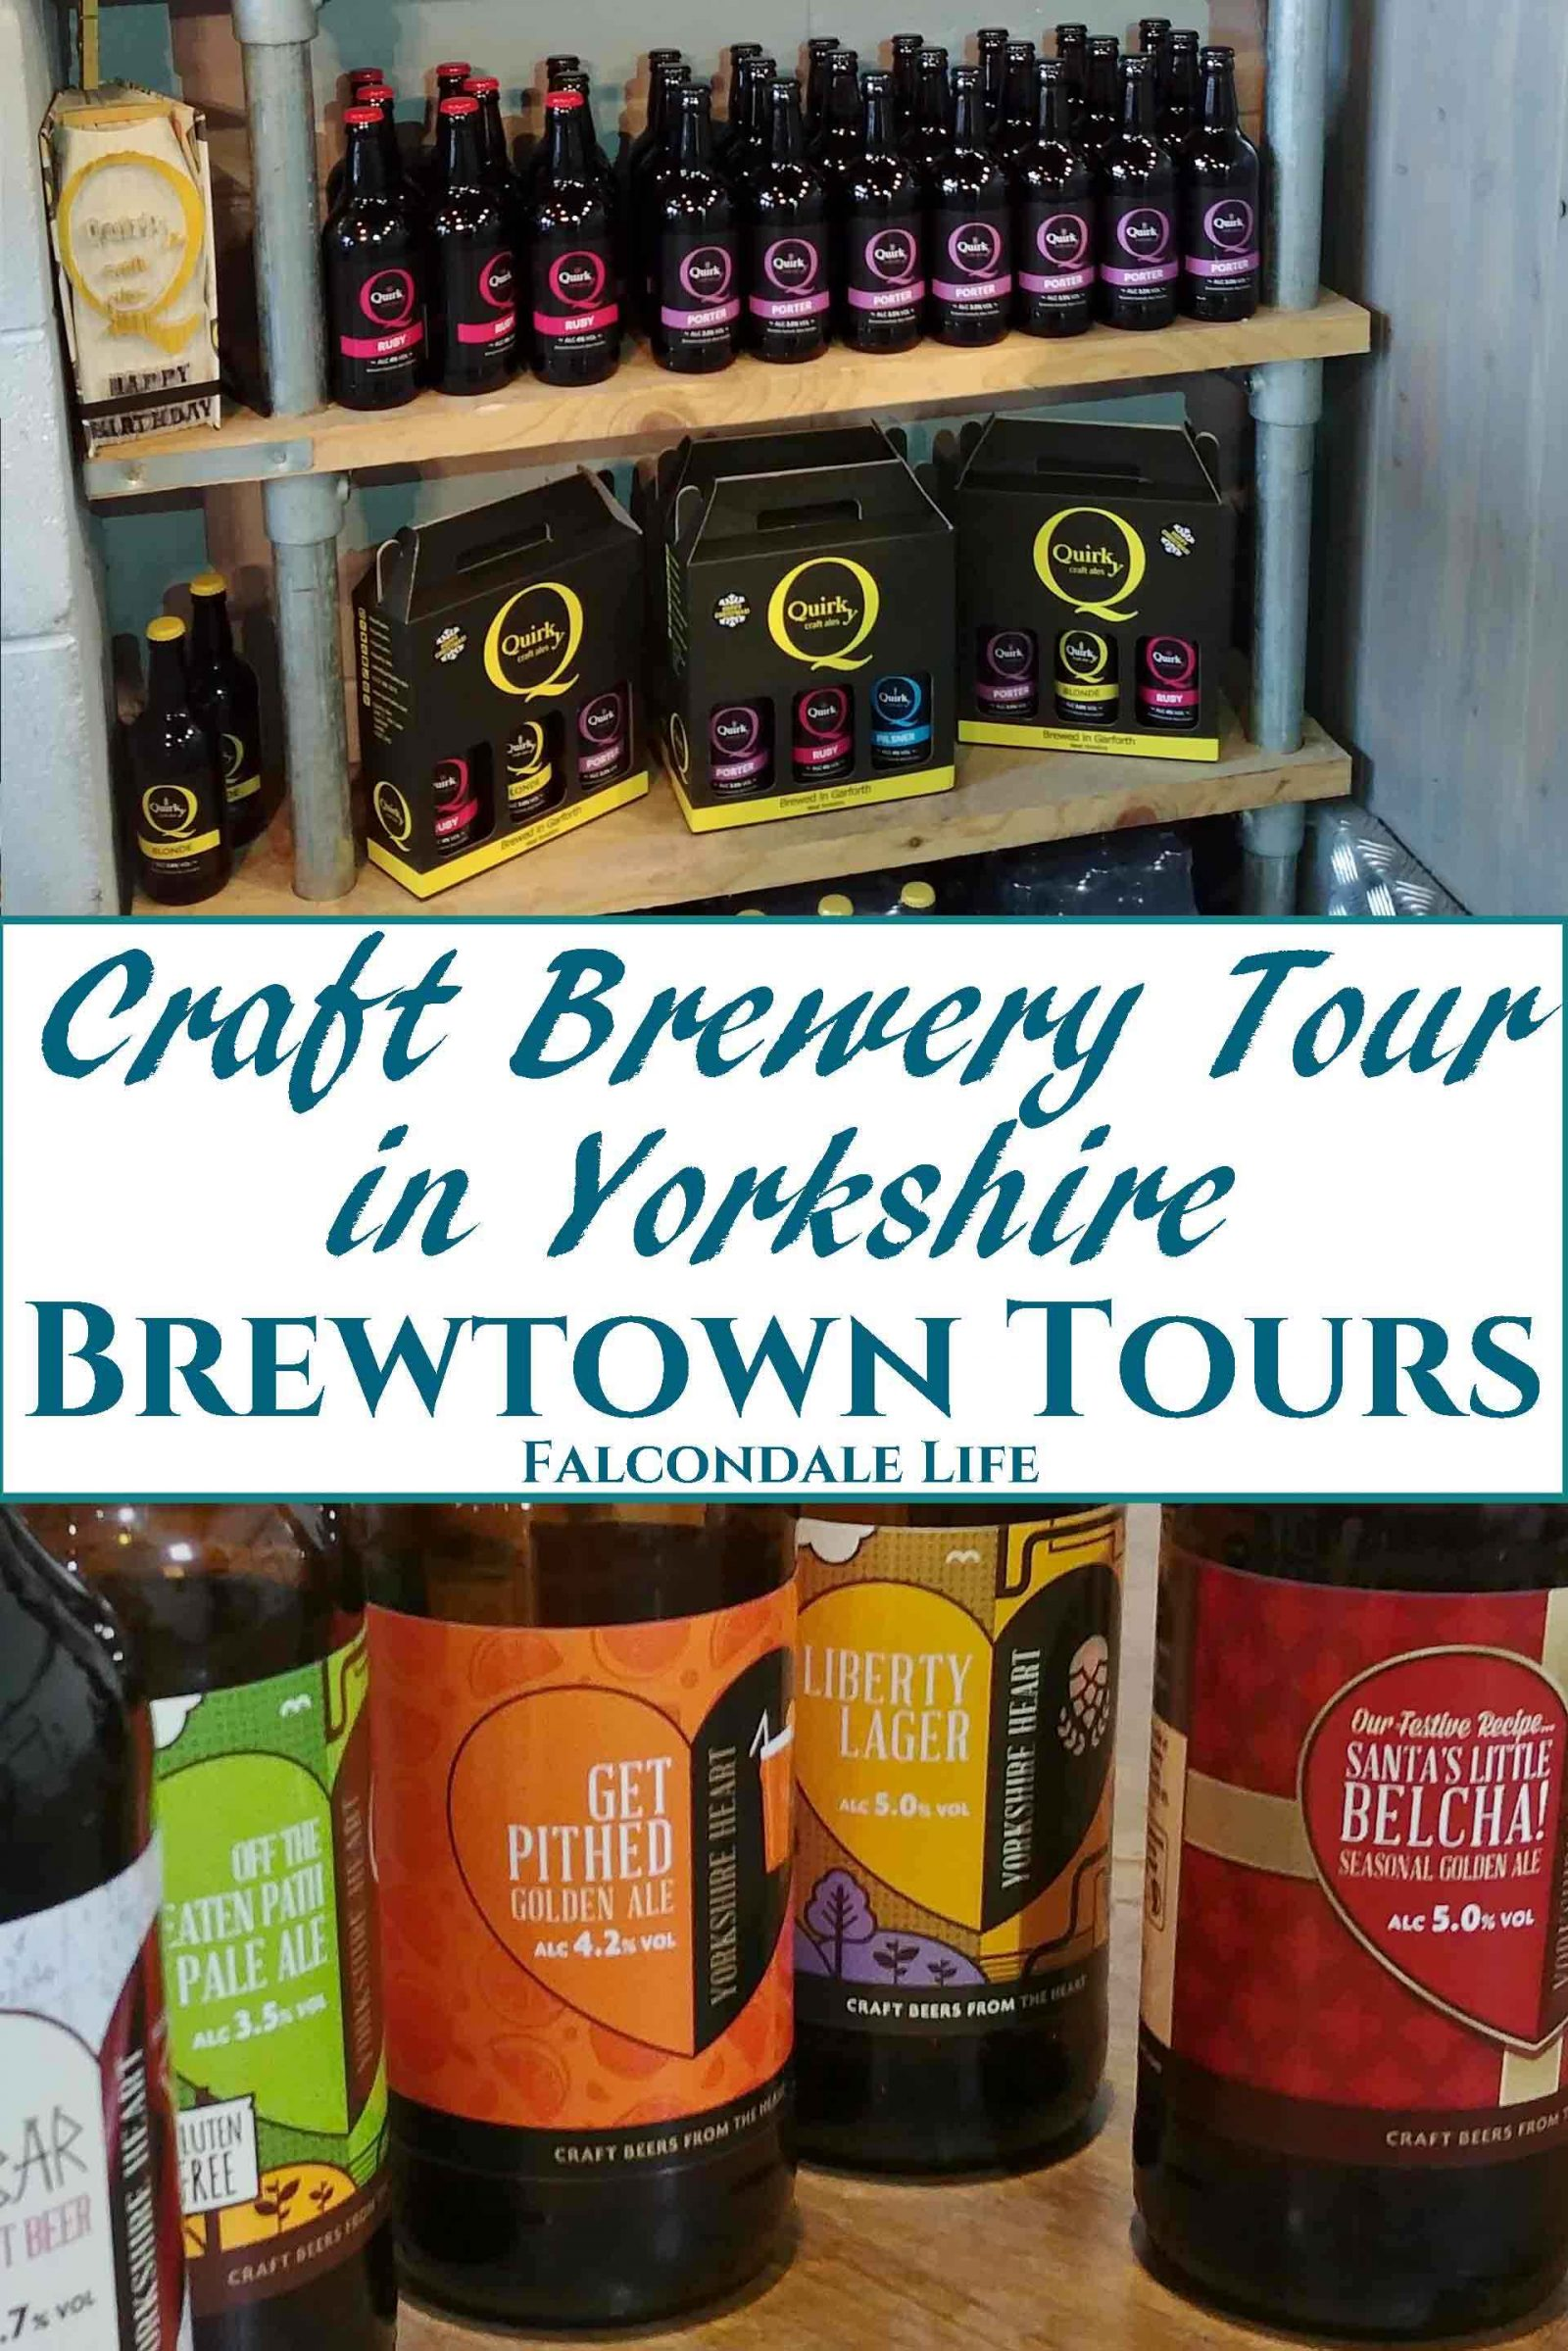 Craft Brewery Tour in Yorkshire with Brewtown Tours - Review on Falcondale Life blog. I was invited to test out a chauffeur-driven craft brewery tour in Yorkshire by Brewtown Tours with visits to Yorkshire Heart, Quirky Ales and Northern Monk. Such a big range of beers to try with flavours to tempt both new and experienced beer drinkers, I never had an empty glass. Bottled beers for sale at local breweries,